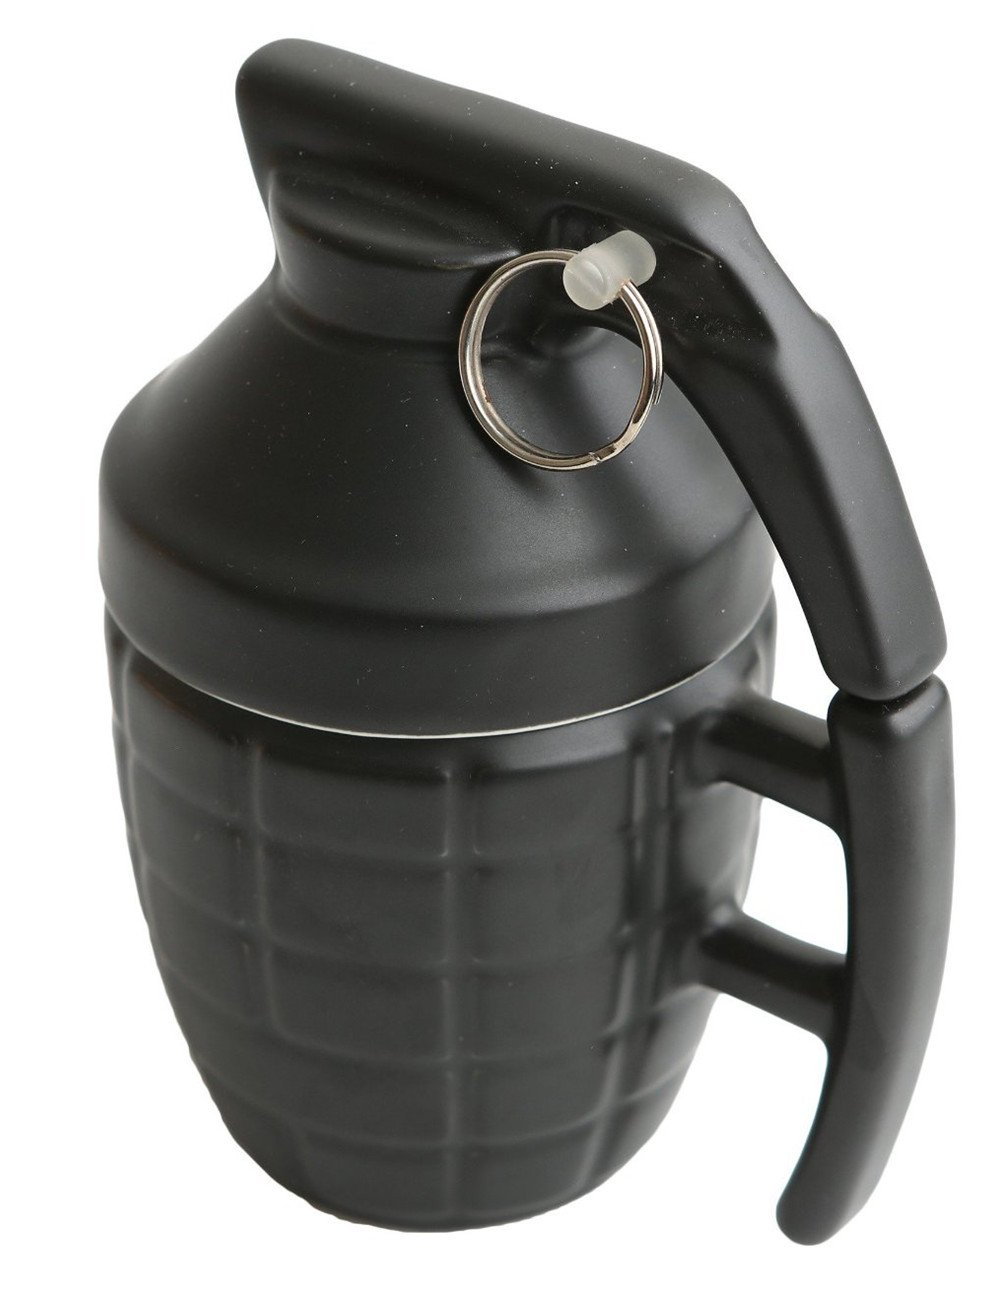 Ailiebhaus 280ML Ceramic Grenade Mug Coffee Cup with Lid, Black